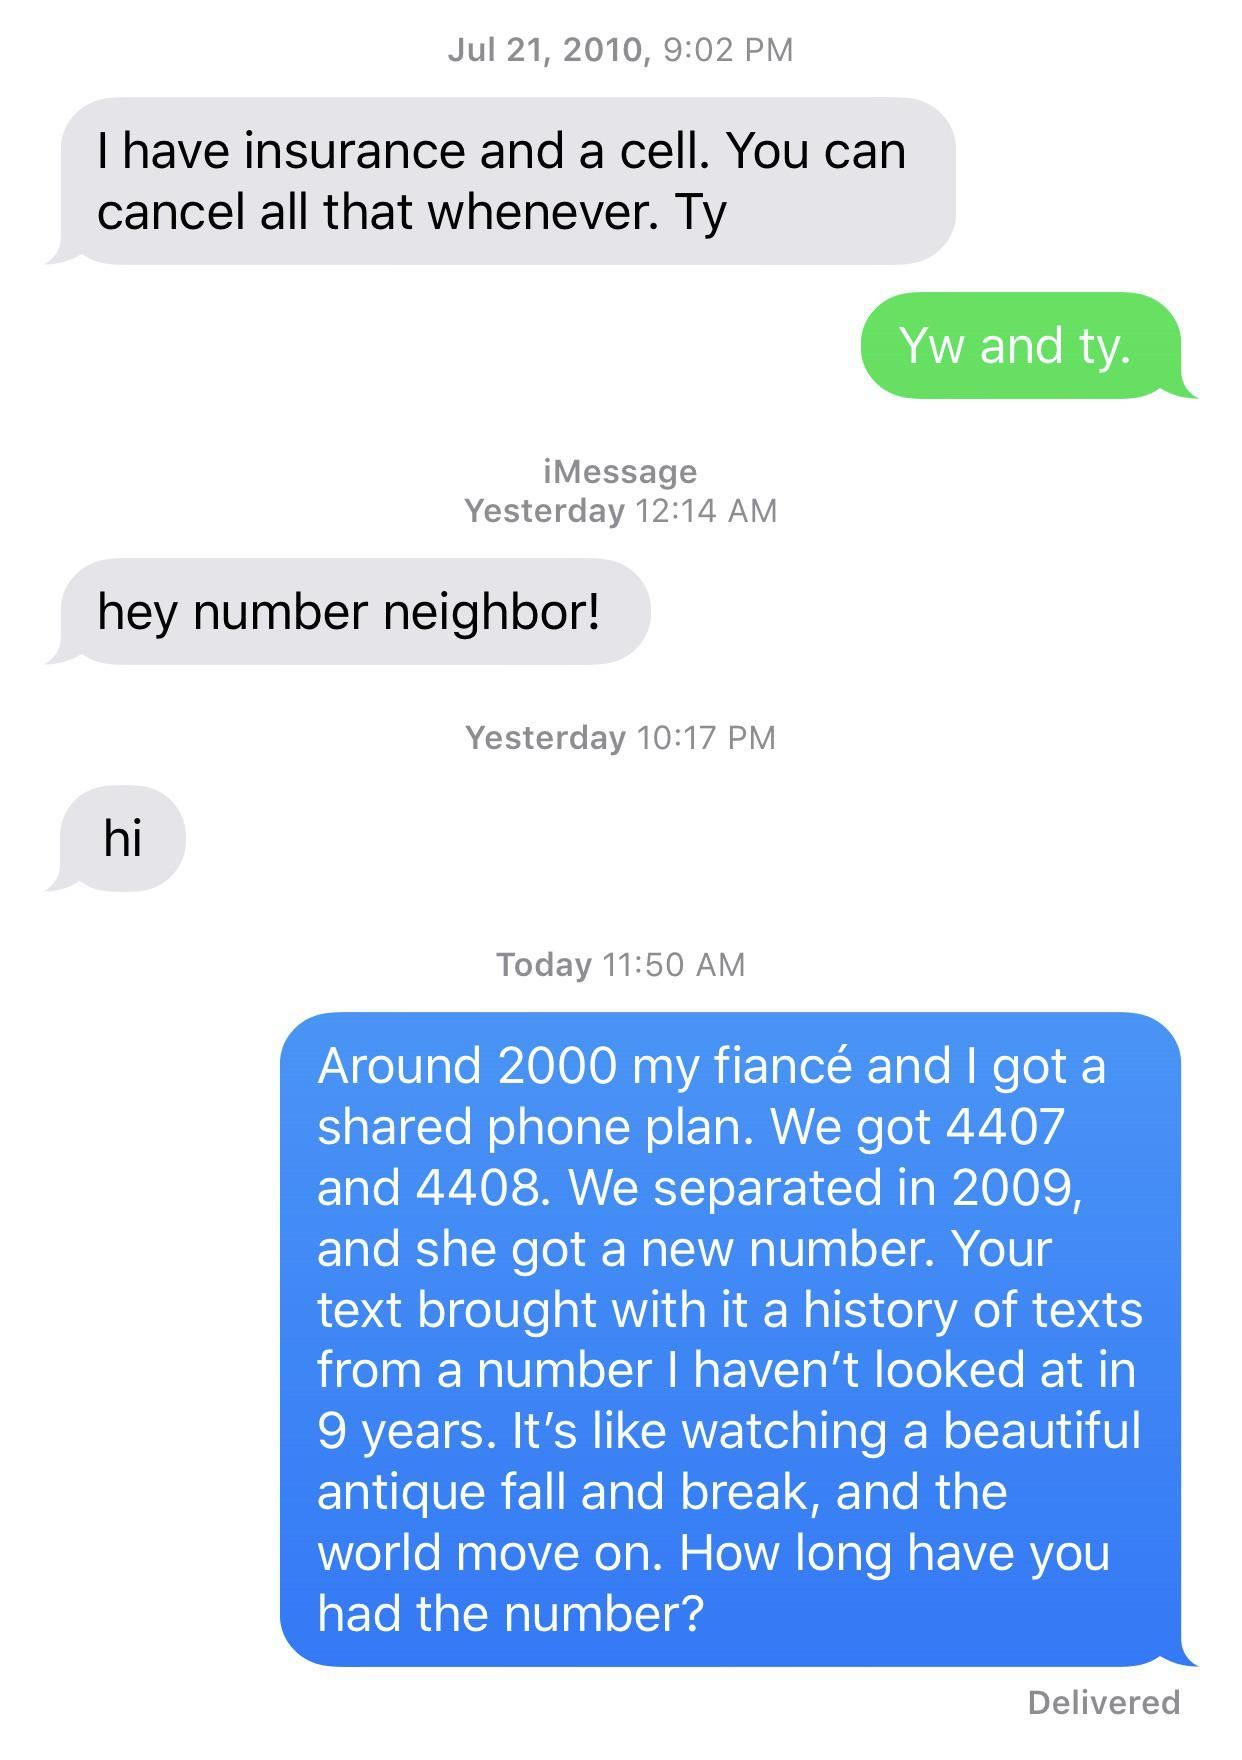 I'm old. I guess number neighbor is now a thing. I think I traumatized a kid. No answer.